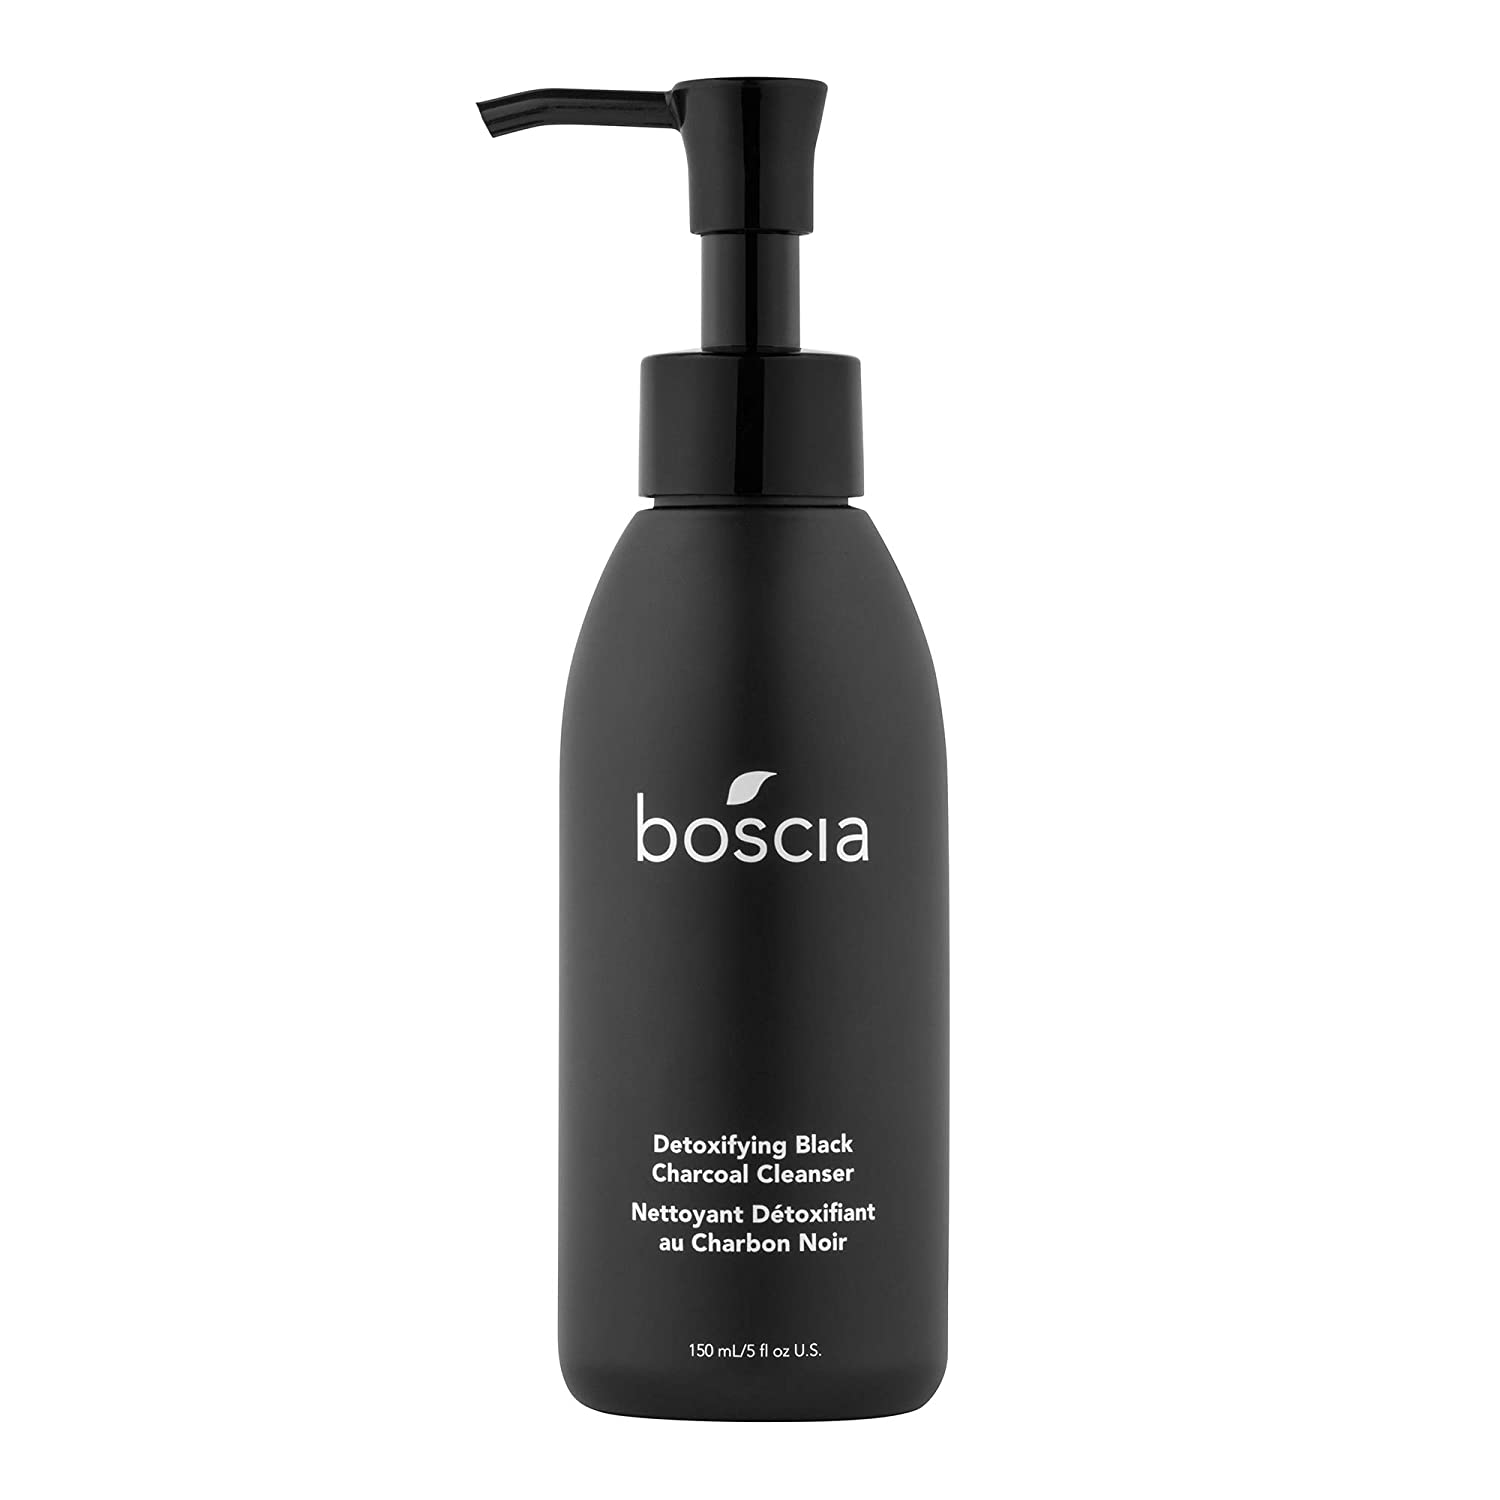 boscia Detoxifying Black Charcoal Cleanser - Activated Charcoal and Vitamin C Warming Gel Face Cleanser